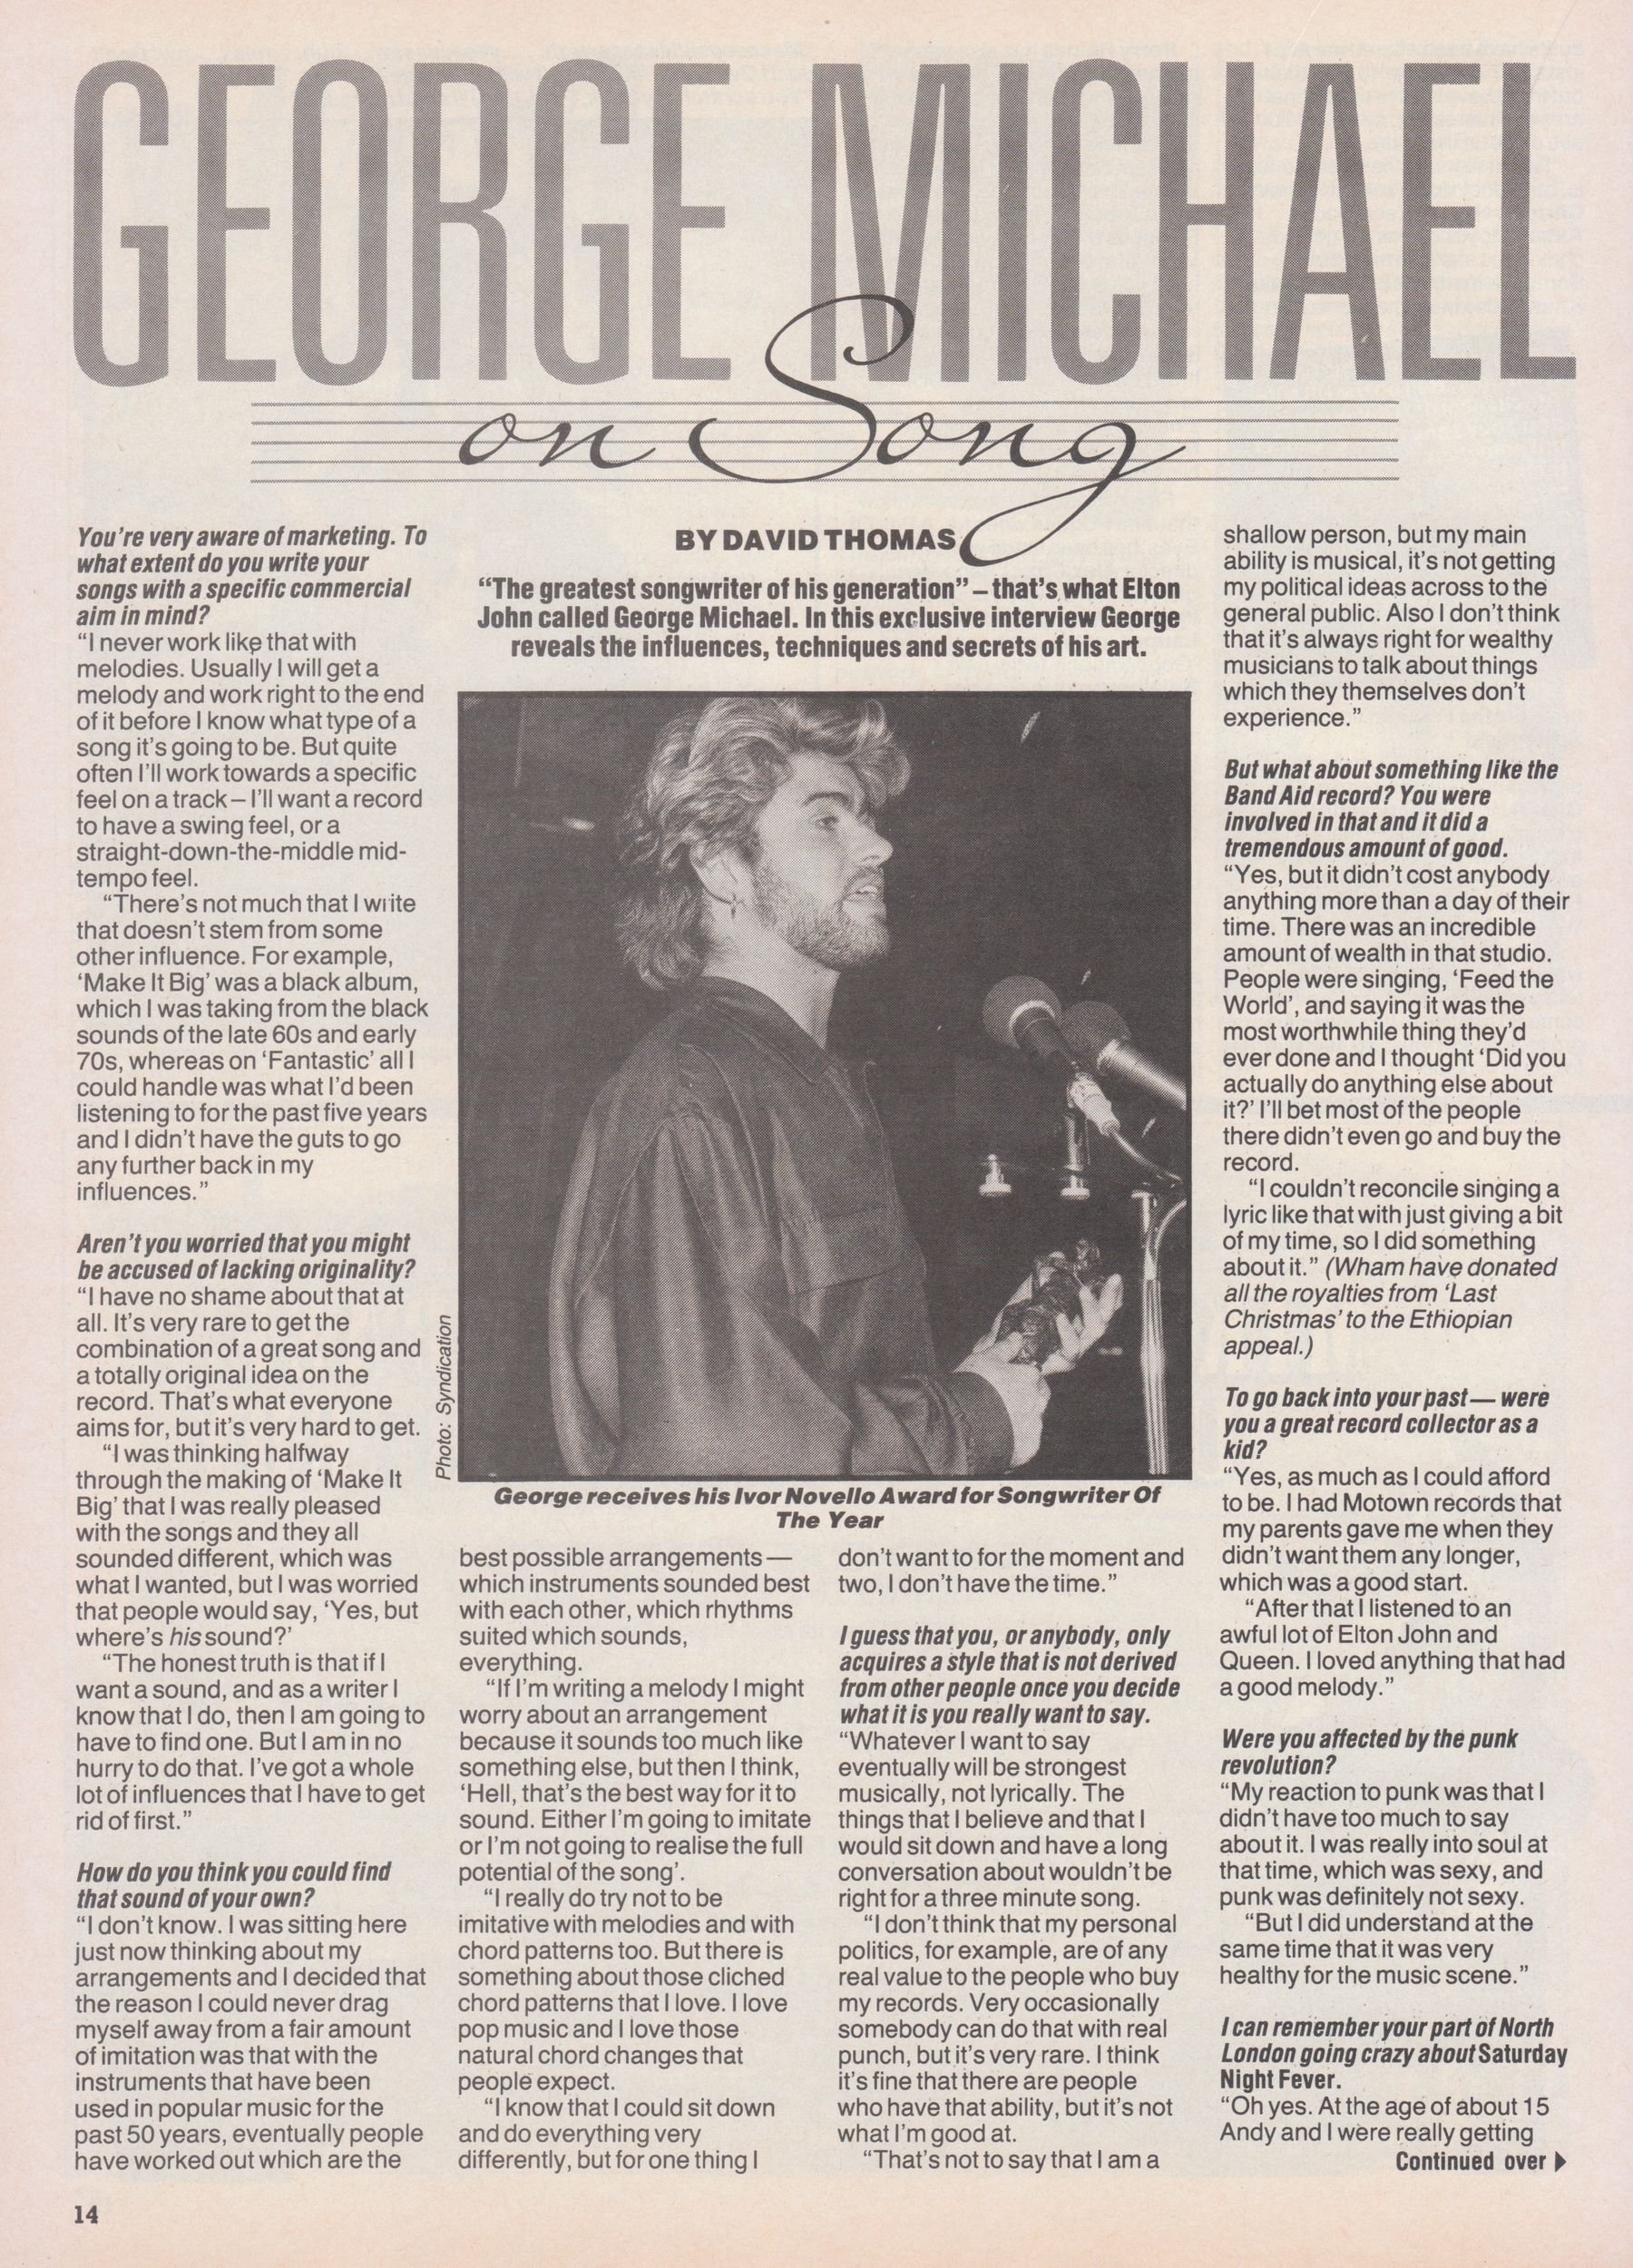 George Michael on His Songwriting Influences, Techniques and